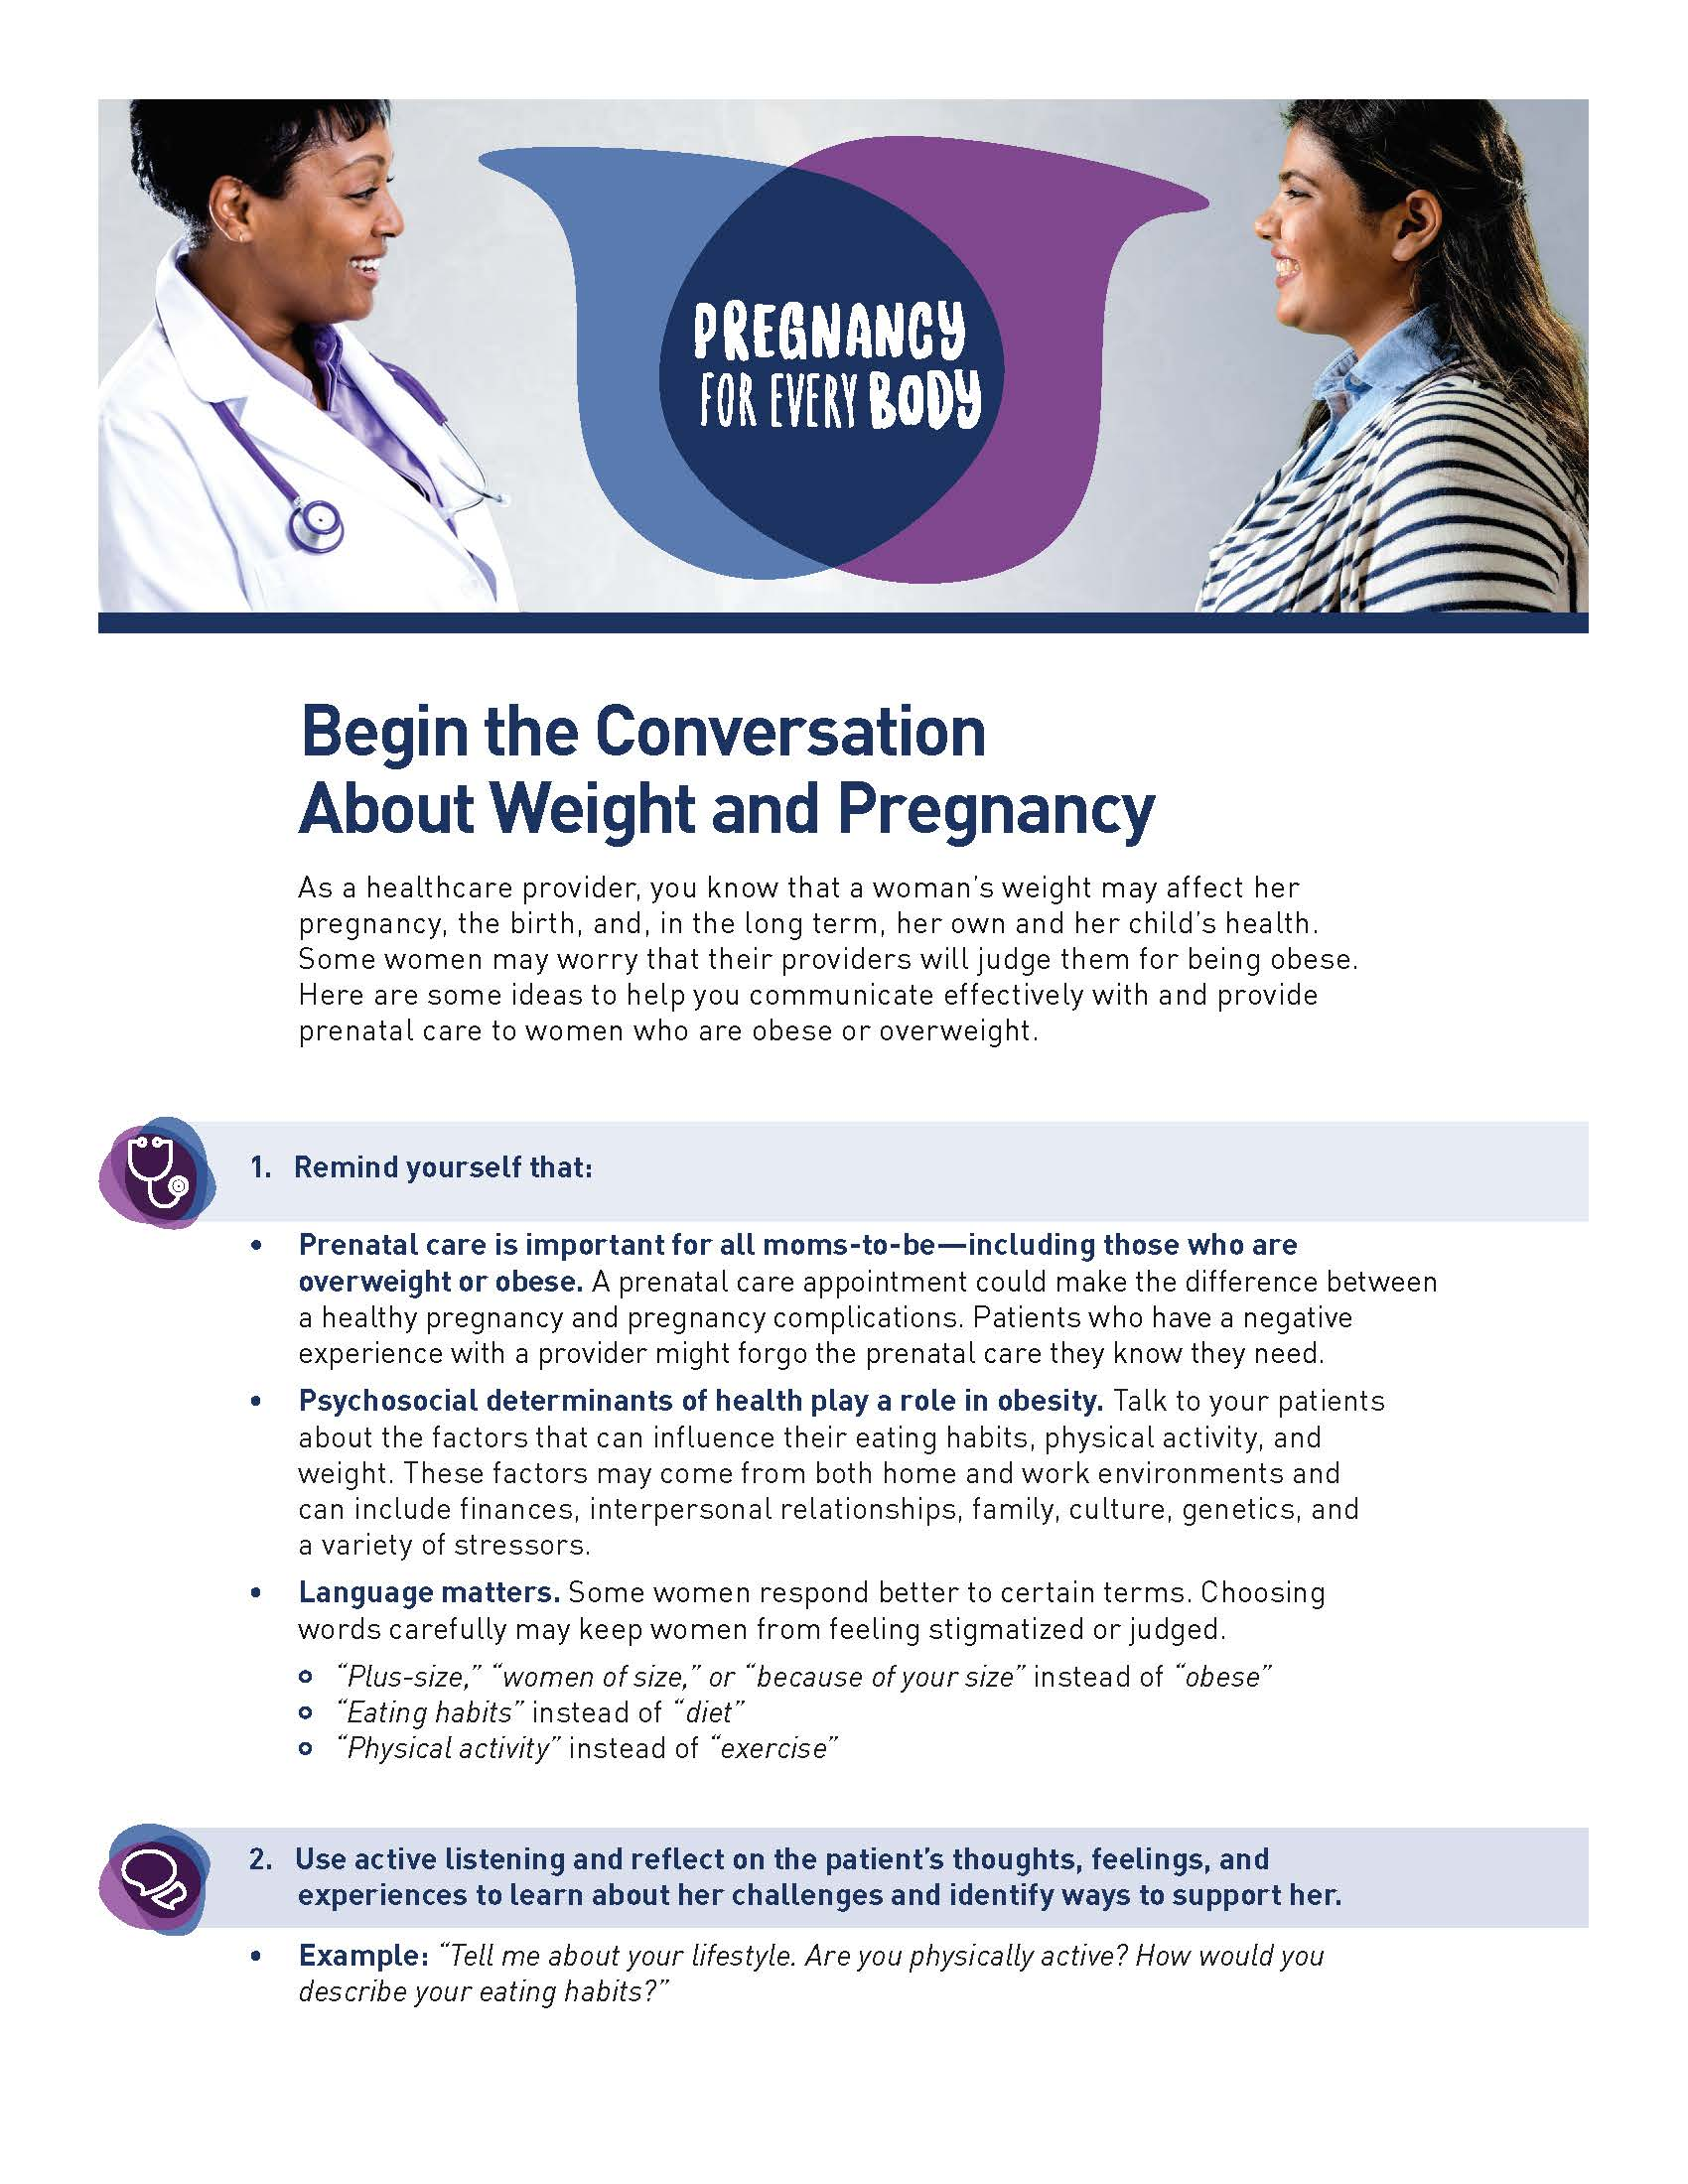 Image of the Pregnancy for Every Body Factsheet: Begin the Conversation About Weight and Pregnancy.